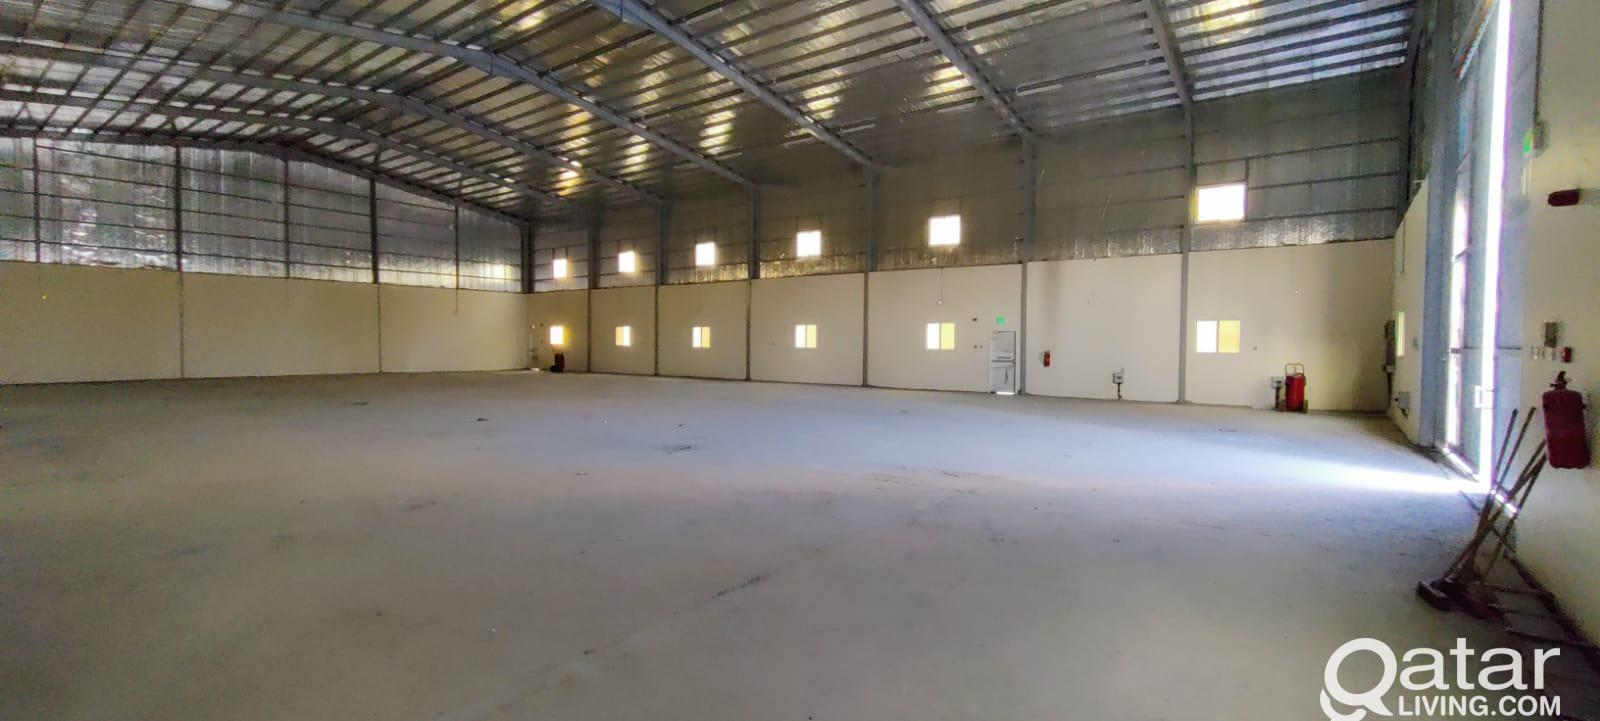 1000 sqmr Warehouse For Rent- Brand New Building